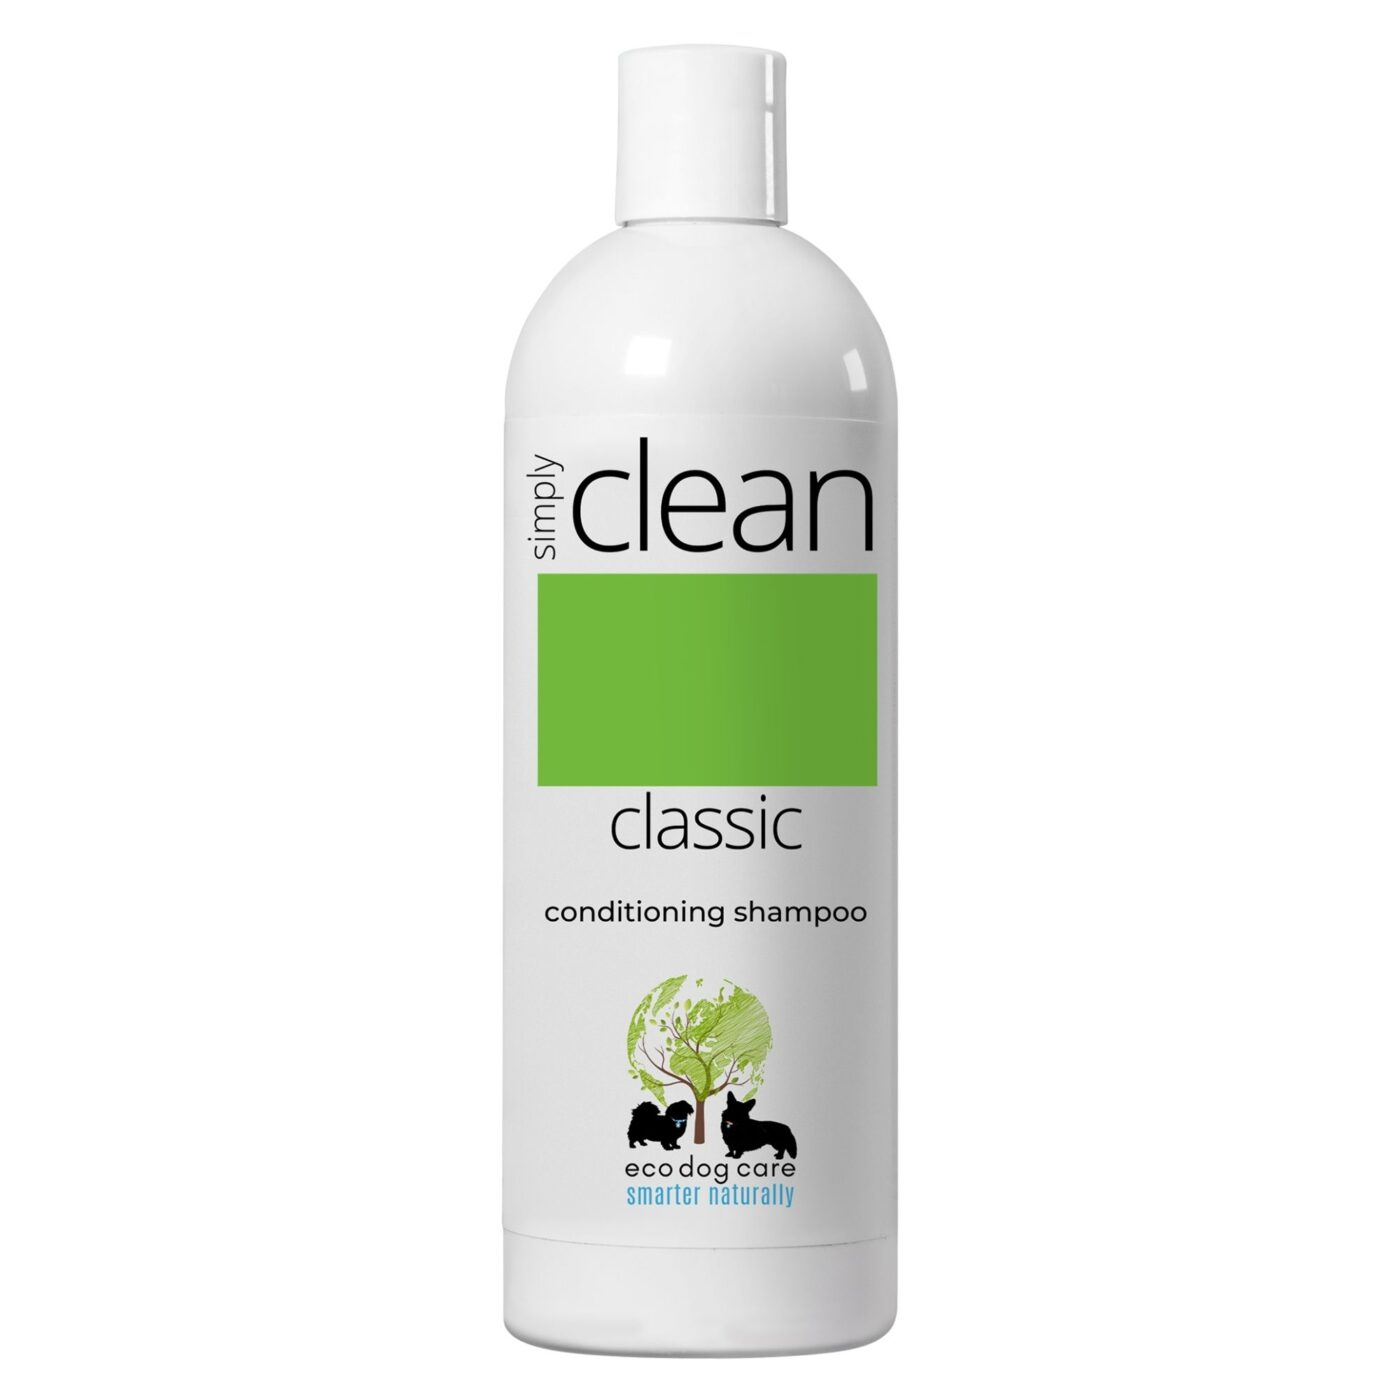 Eco Dog Care Simply Clean Classic Shampoo Bottle